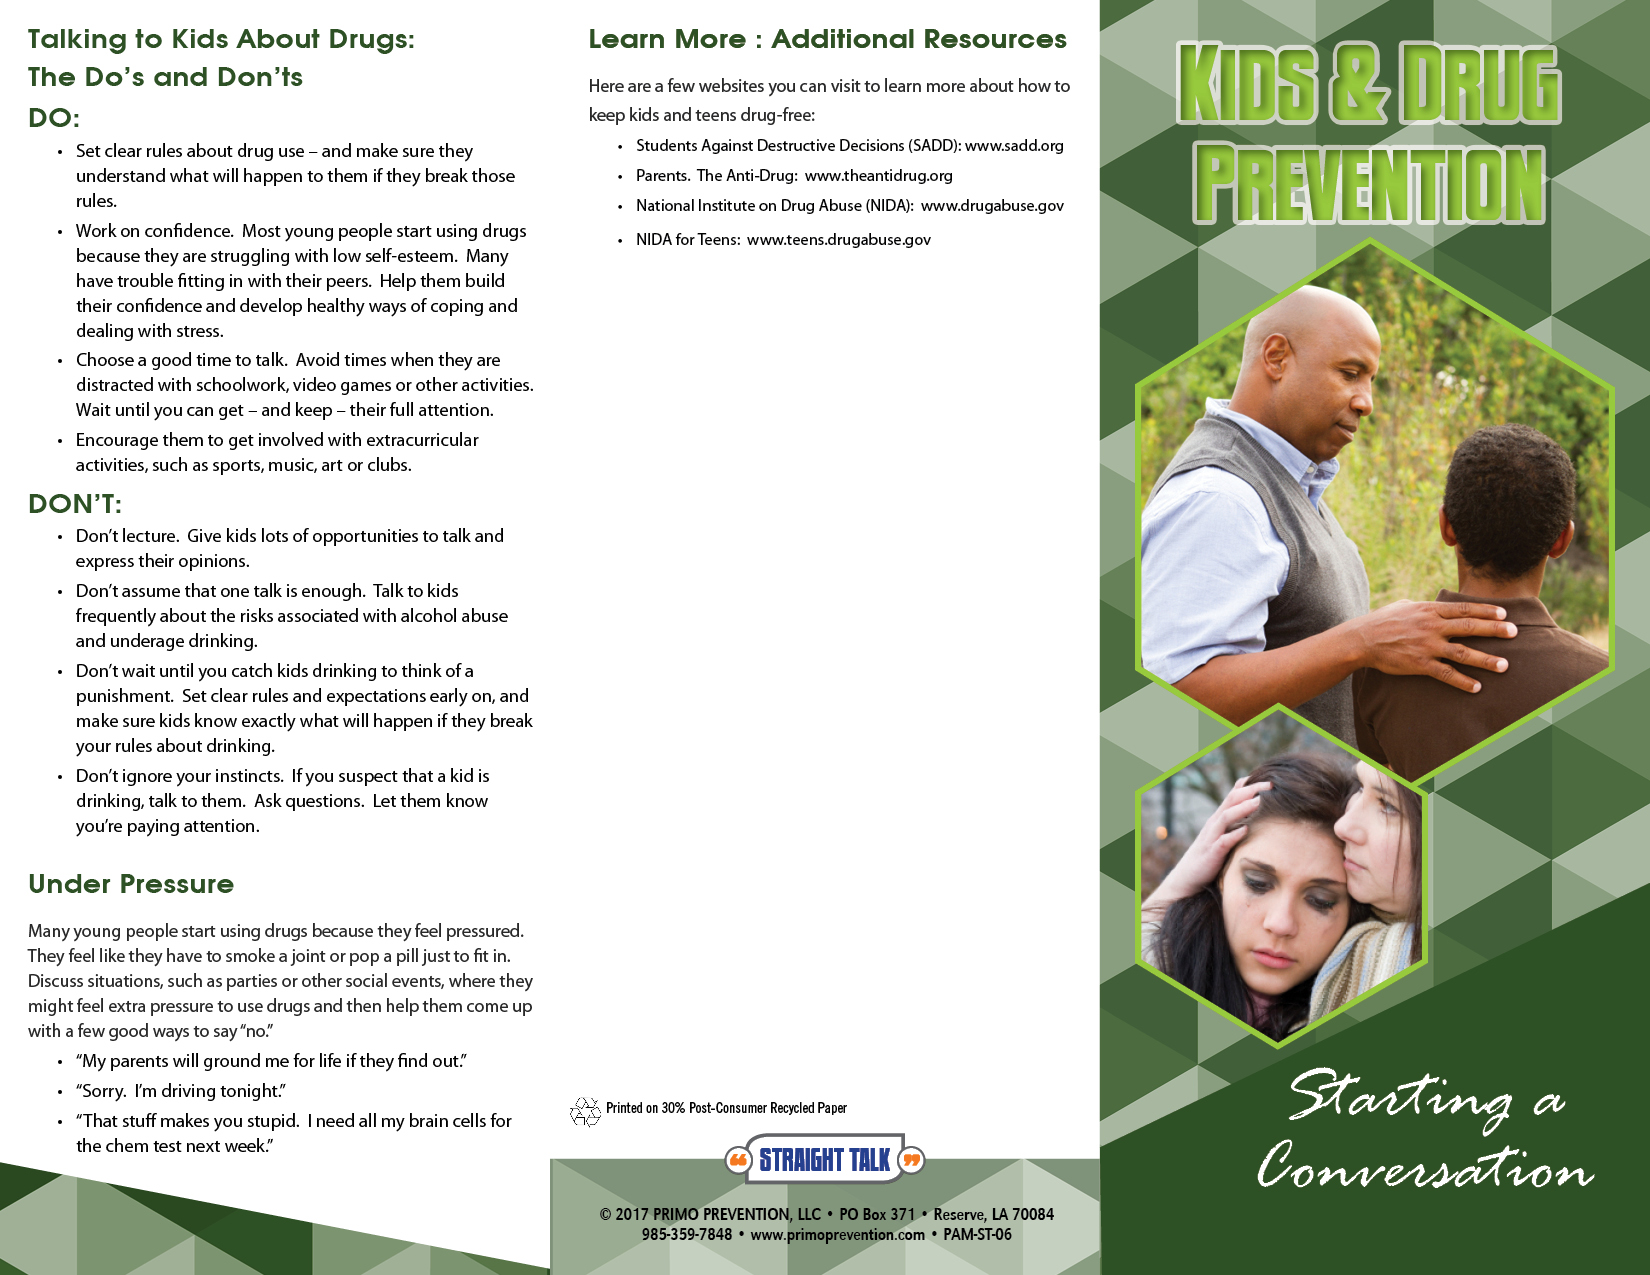 Safe dating tips brochures templates 5